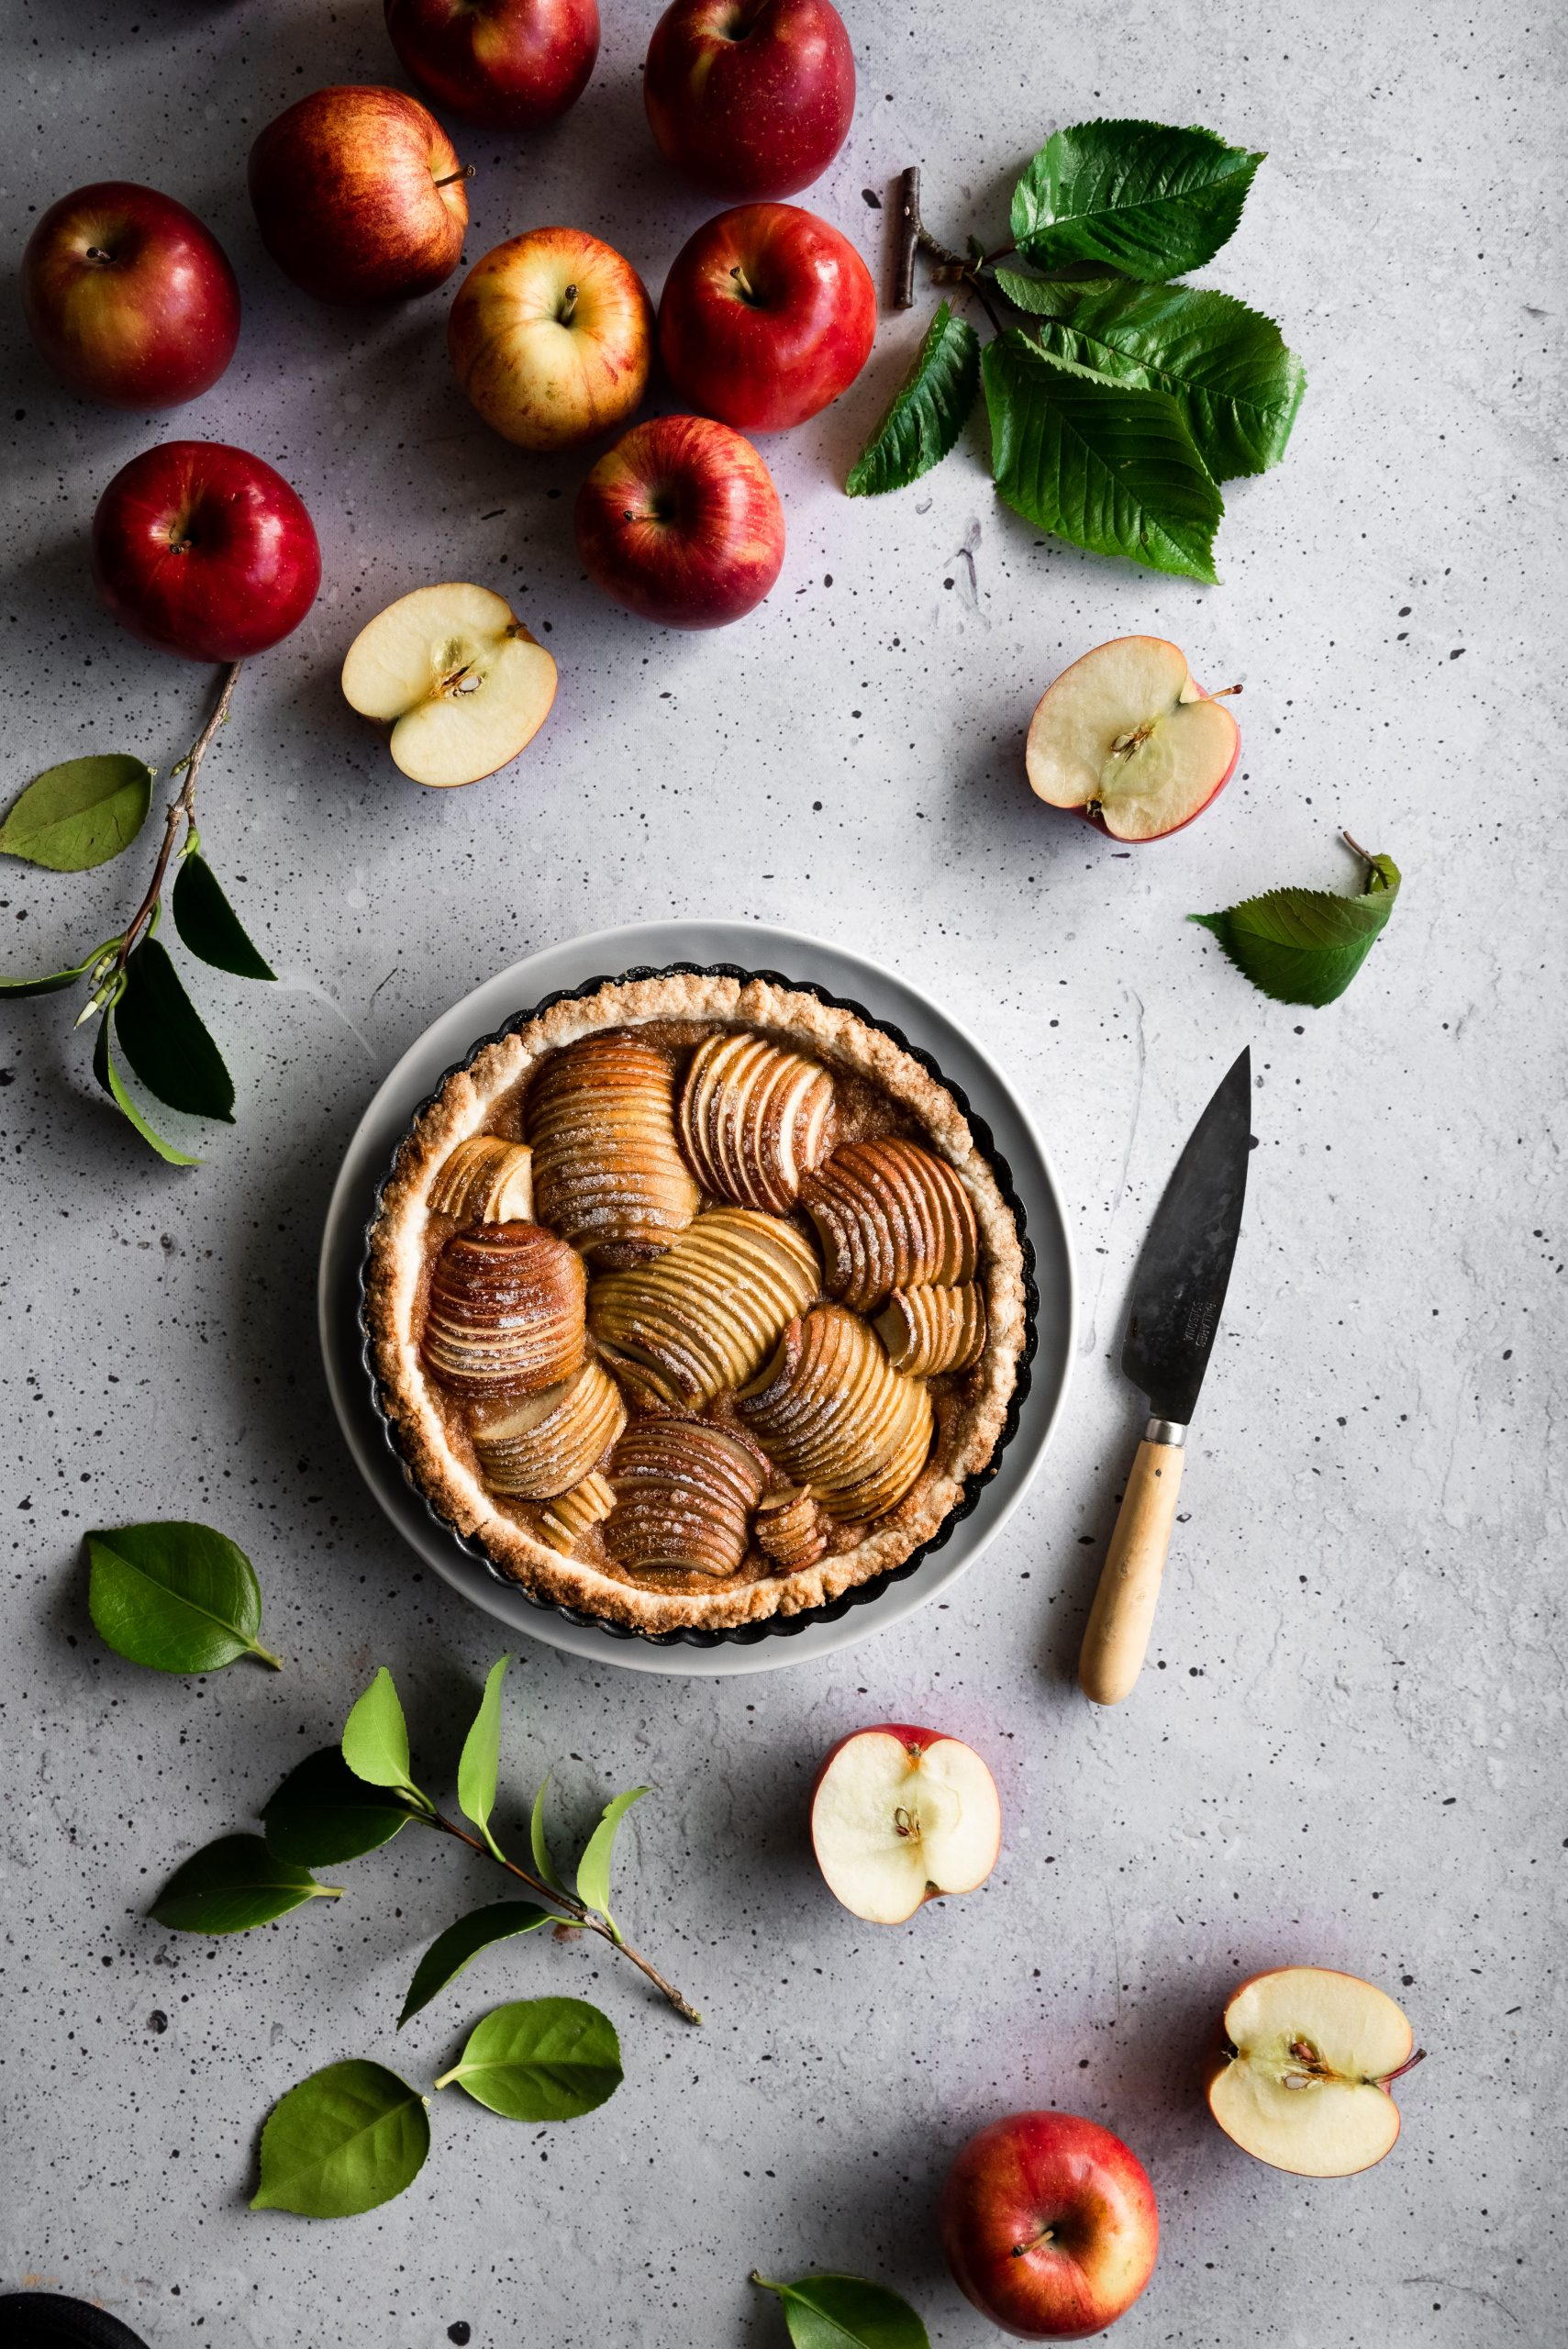 overhead image of a french apple tart on a wire rack surrounded by apples, leaves and a paring knife.